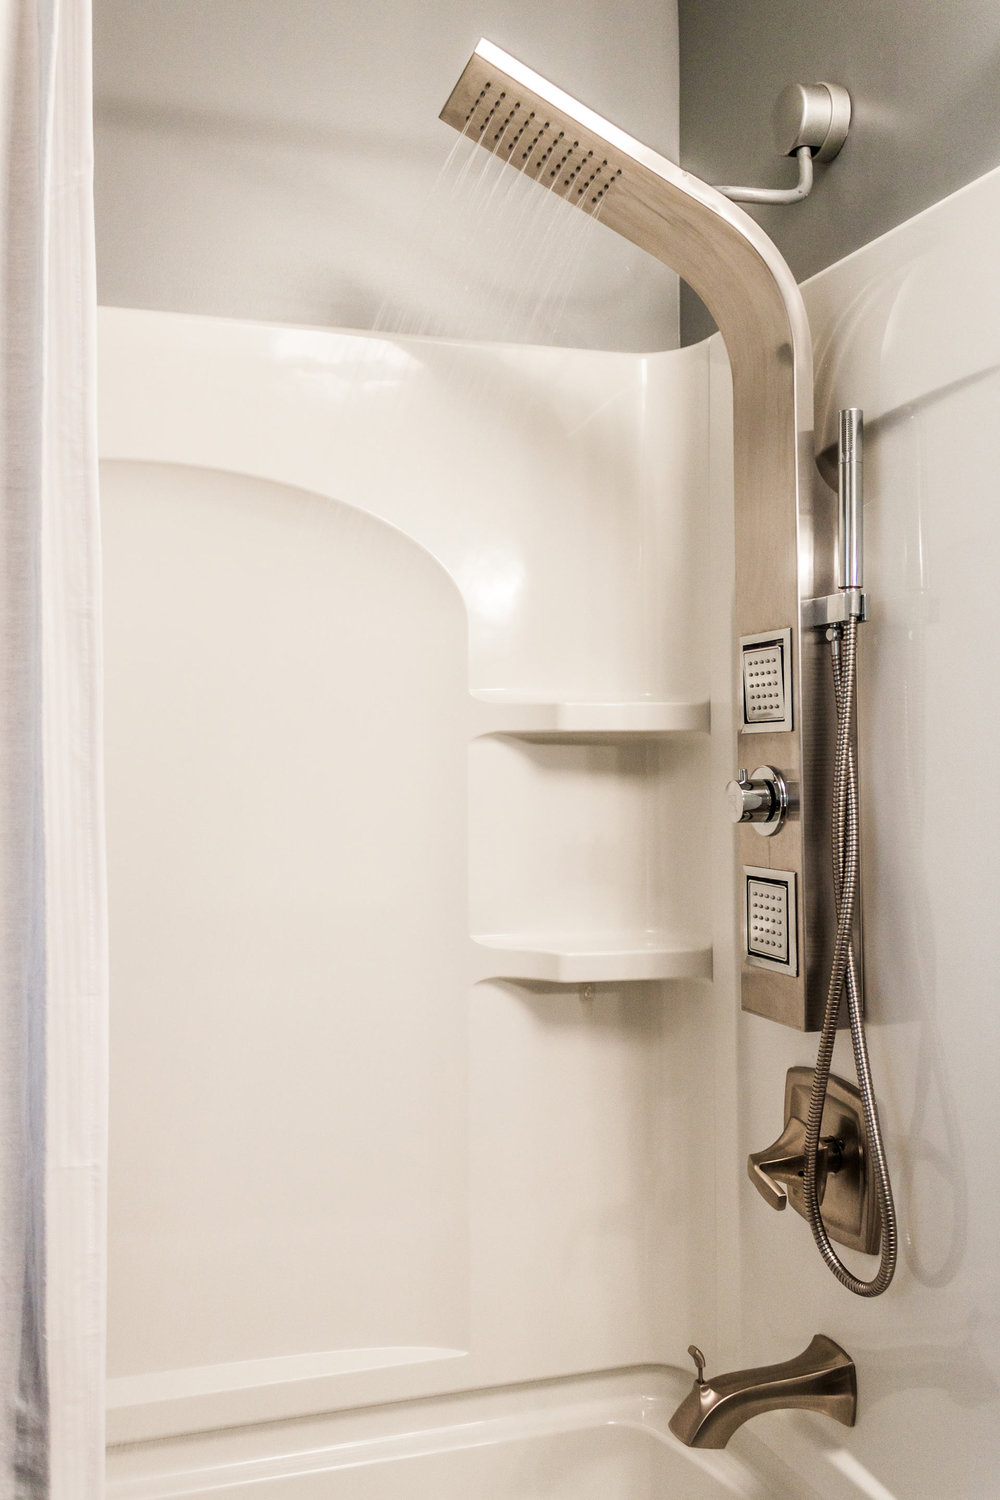 - Even a humble acrylic bath tub shower combo can have an amazing shower tower. This unit is designed to be able to retrofit the standard location.